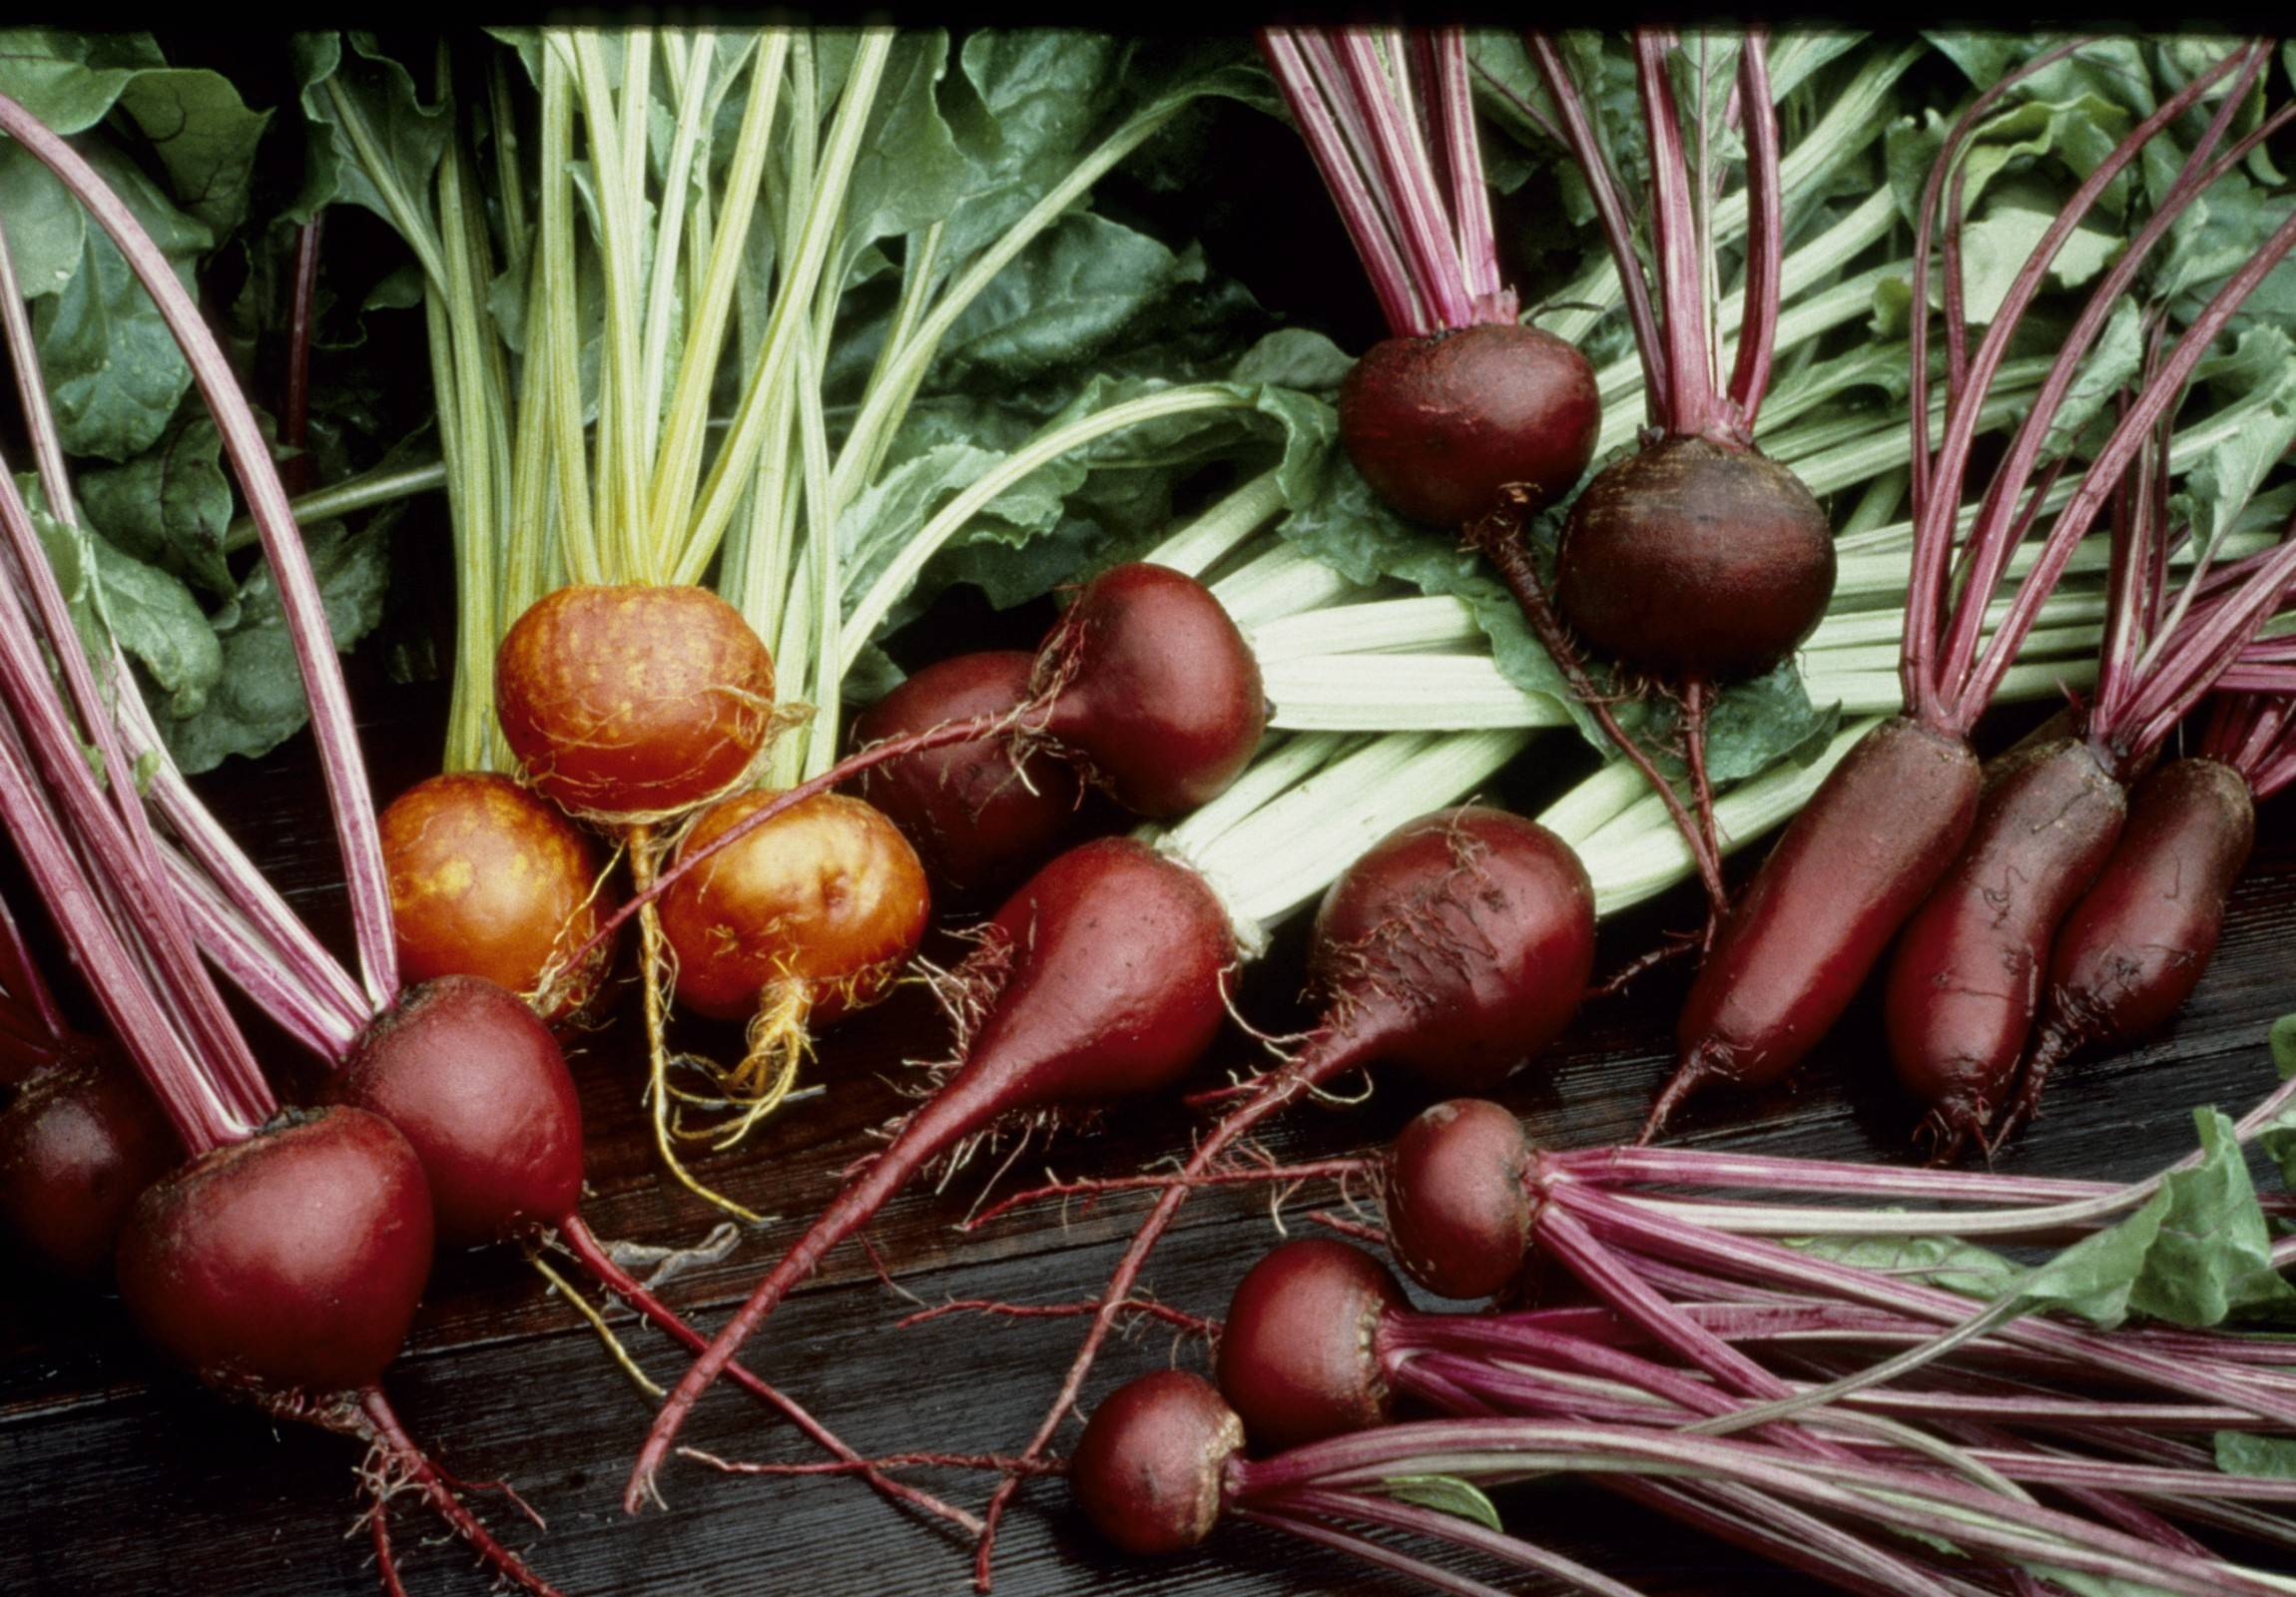 The many different varieties and colors of beets adds to the fun of growing and cooking with them.